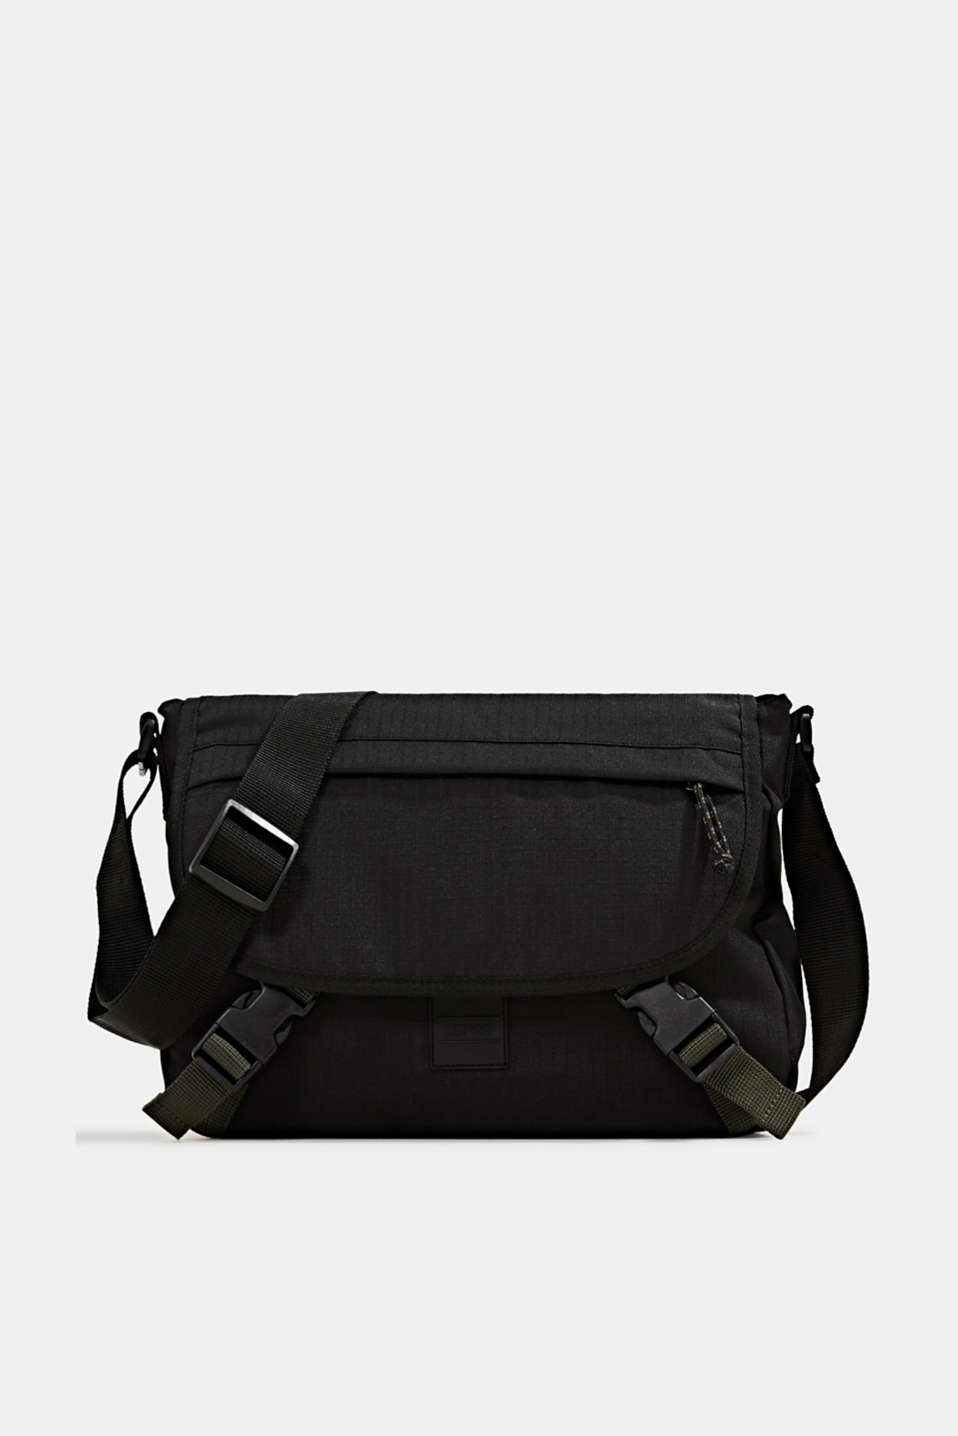 Esprit - Messenger-bag i robust tekstil